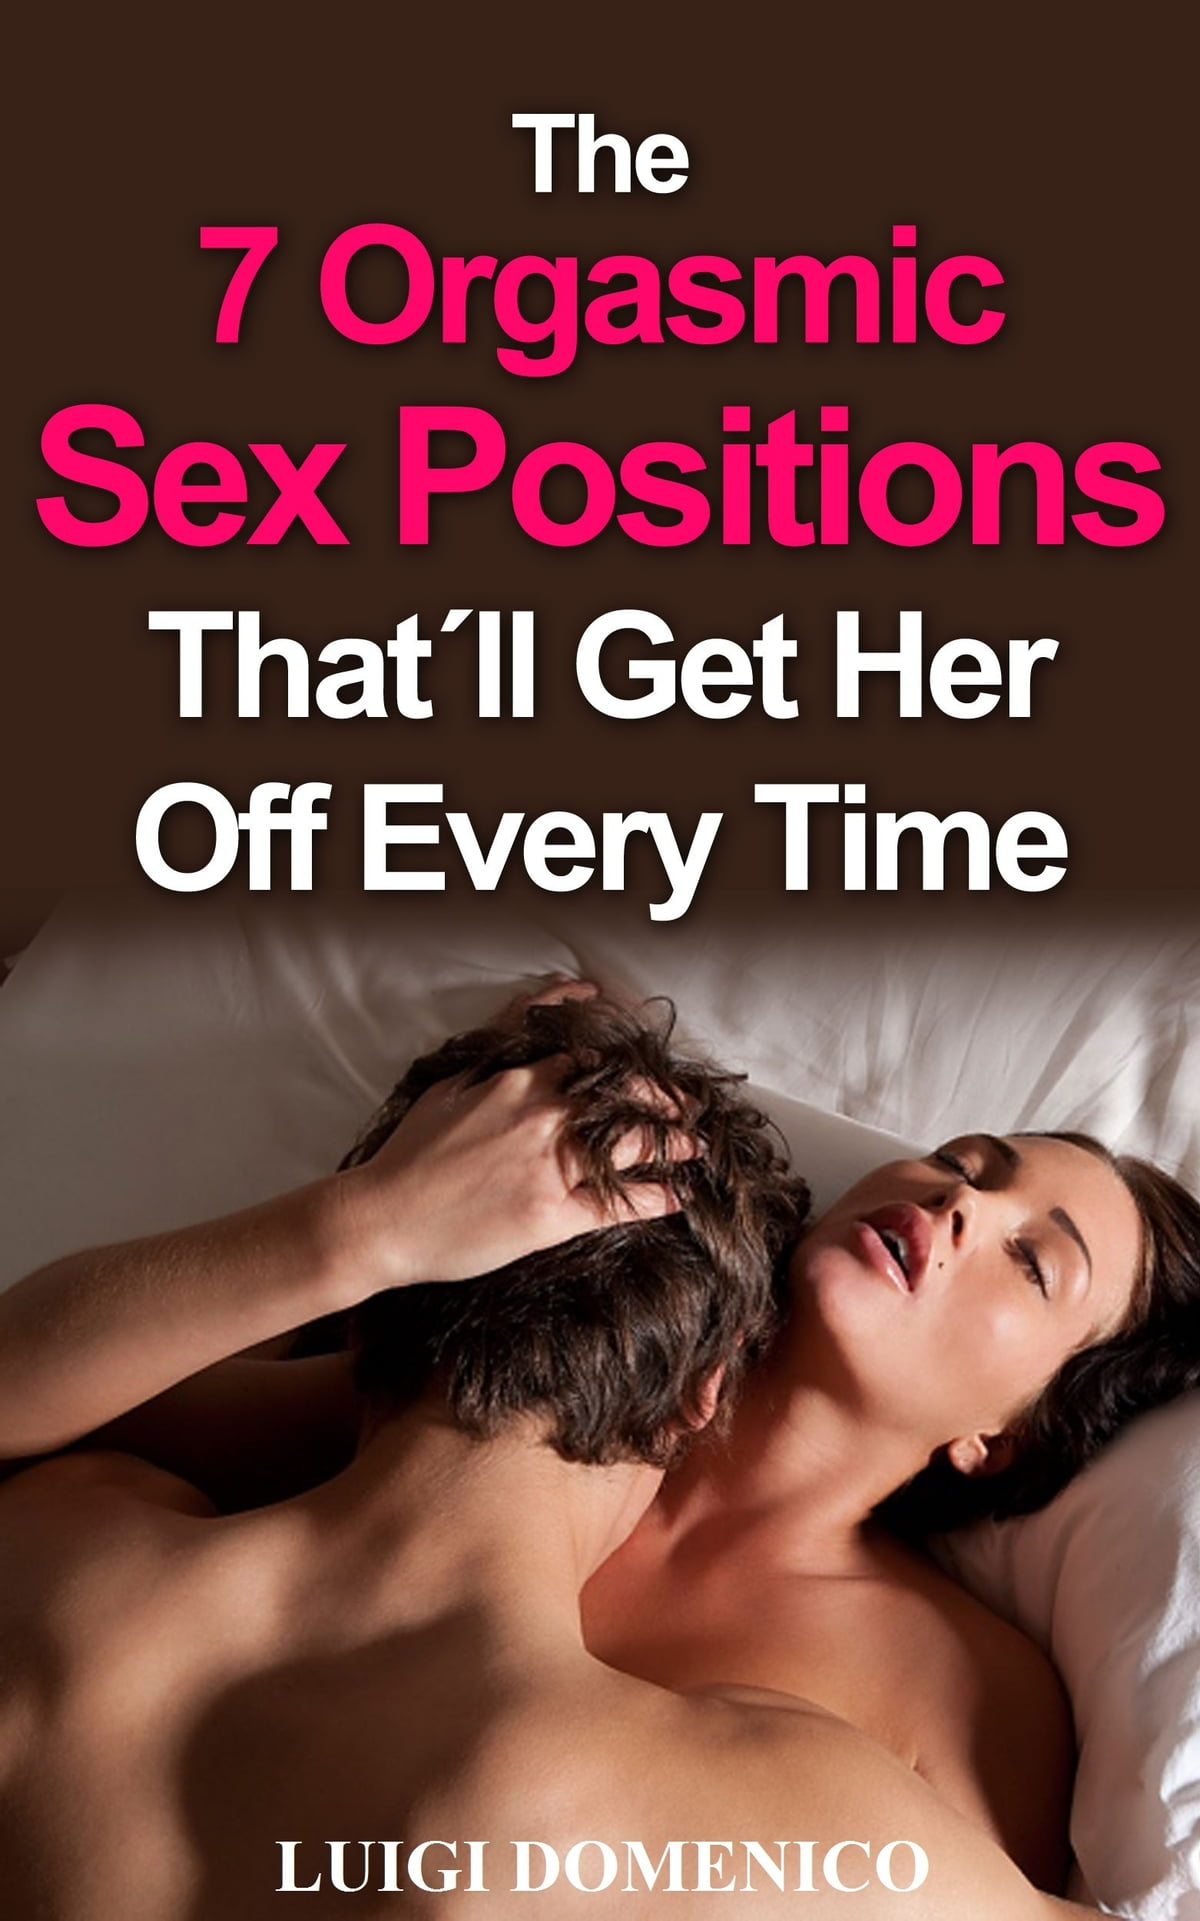 Sex positions for orgasm